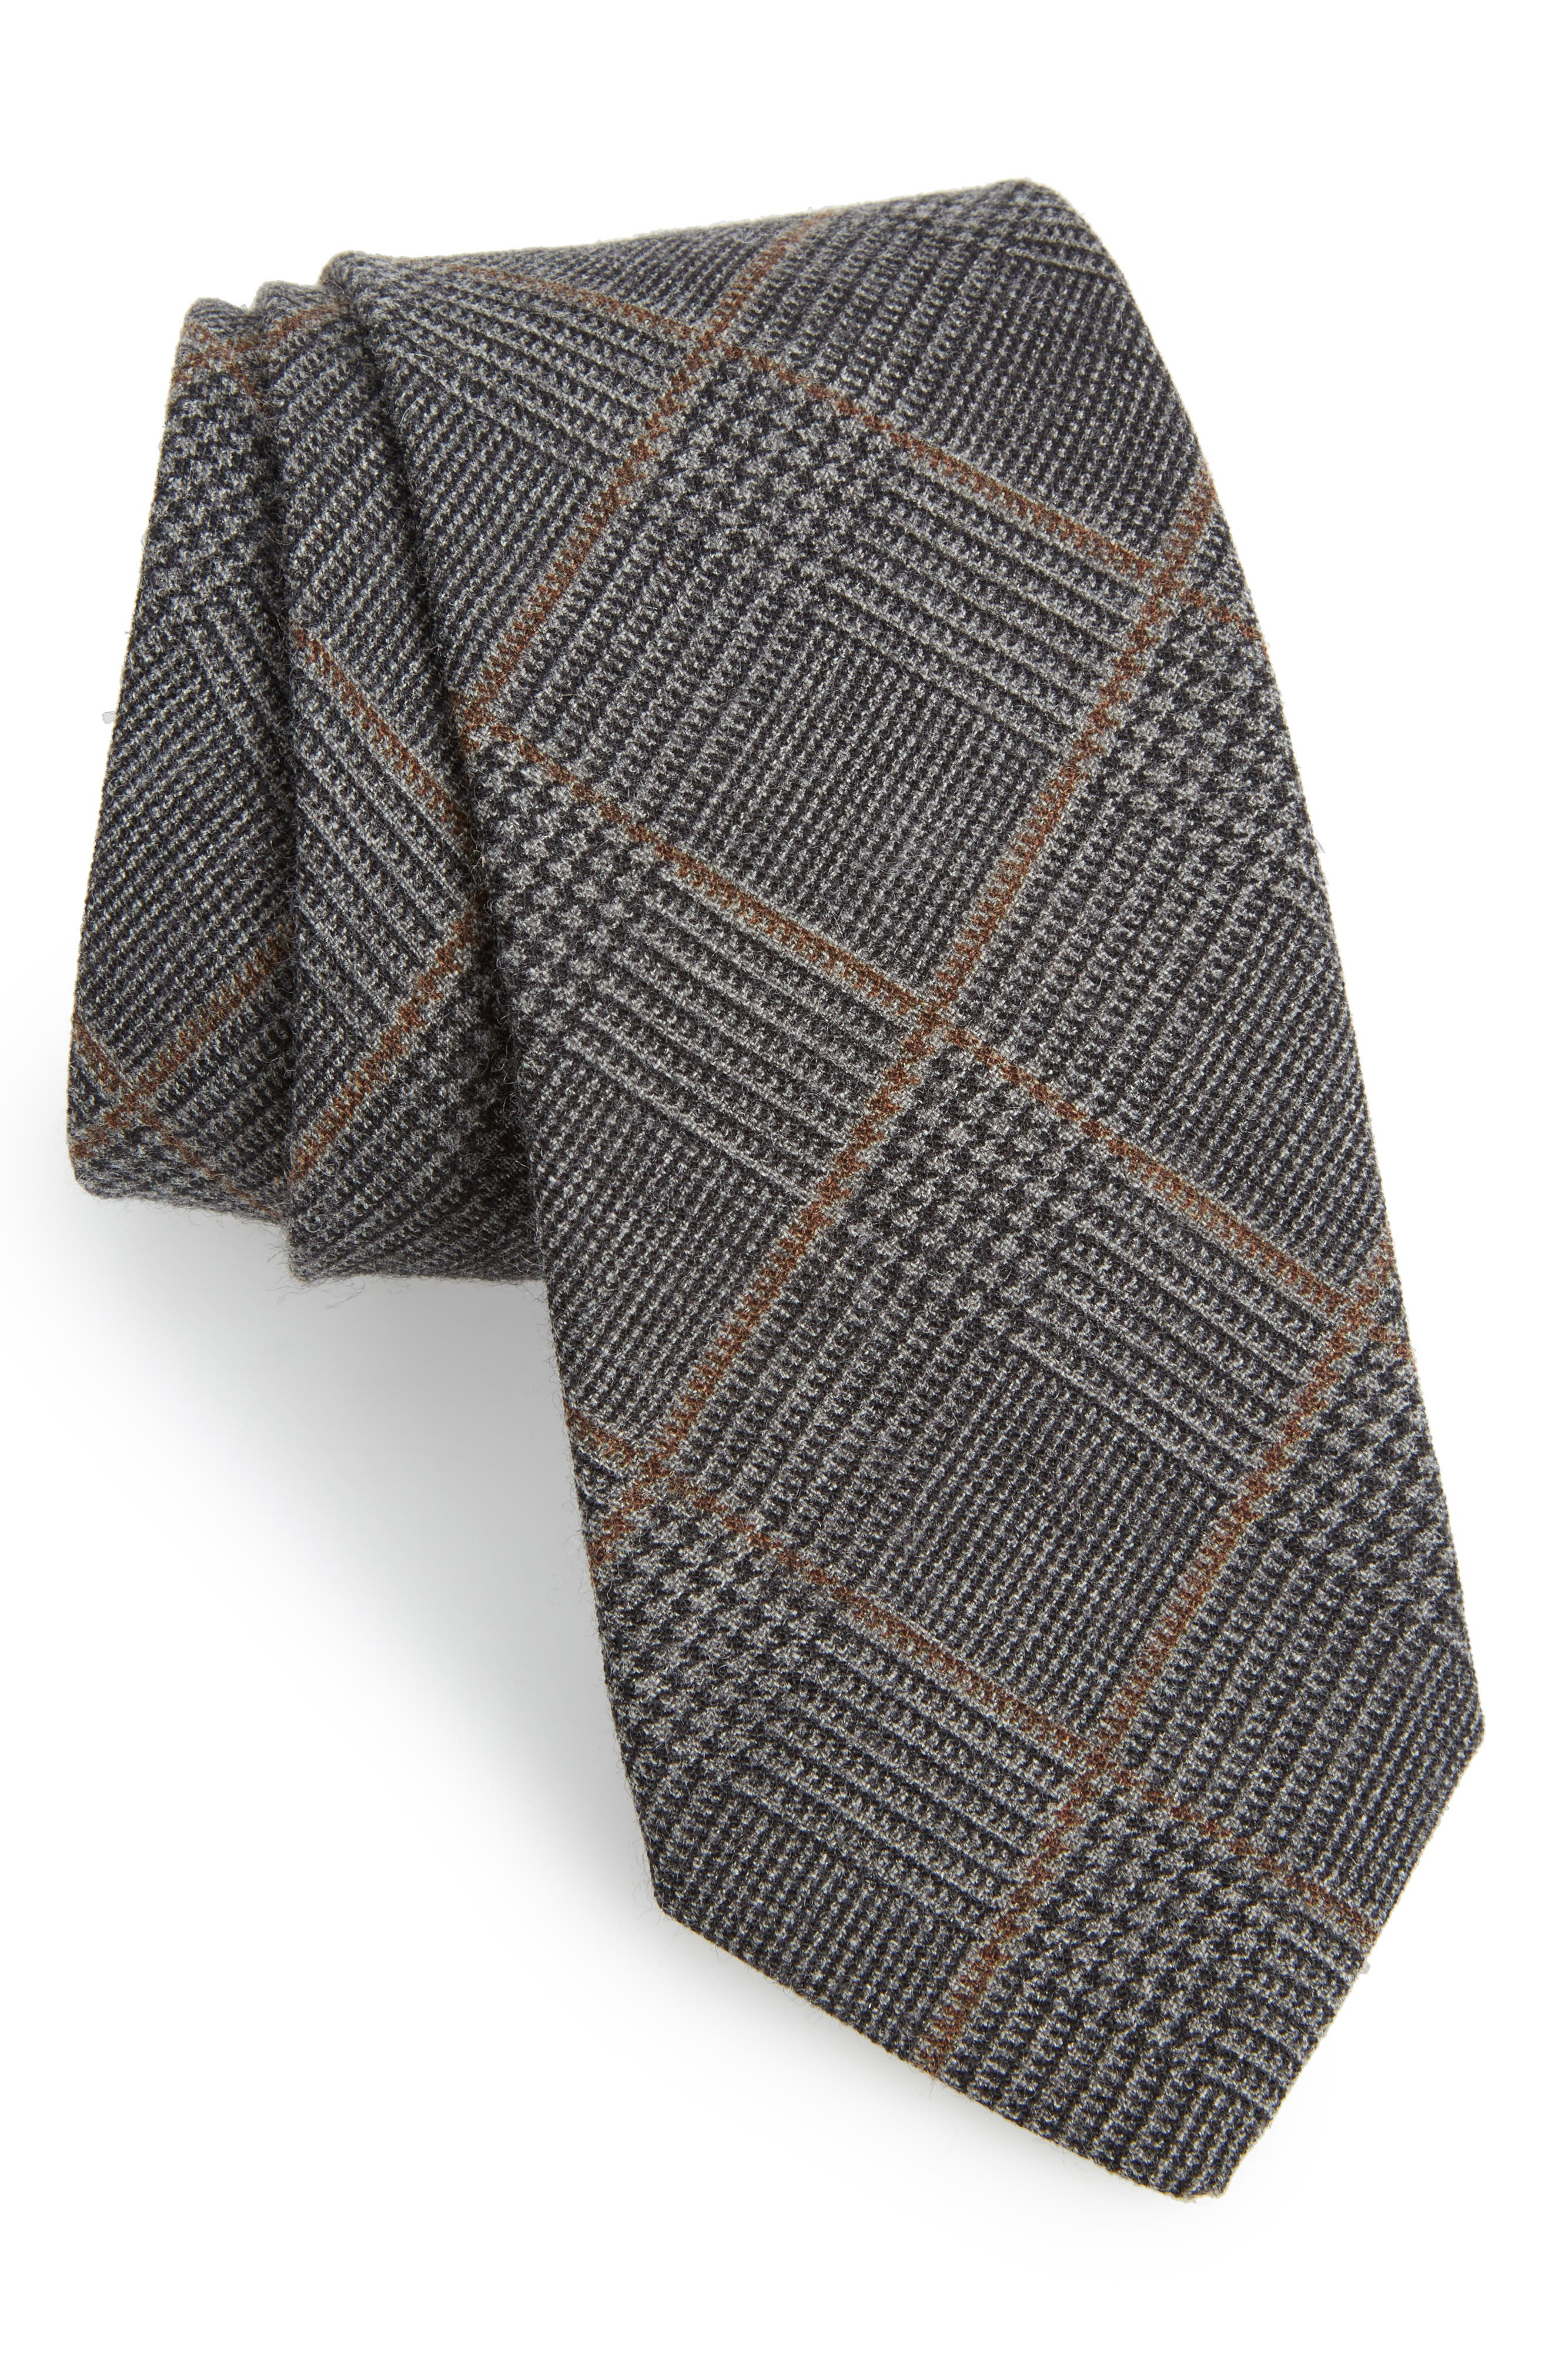 Alternate Image 1 Selected - Bonobos Dupont Glen Plaid Wool Tie